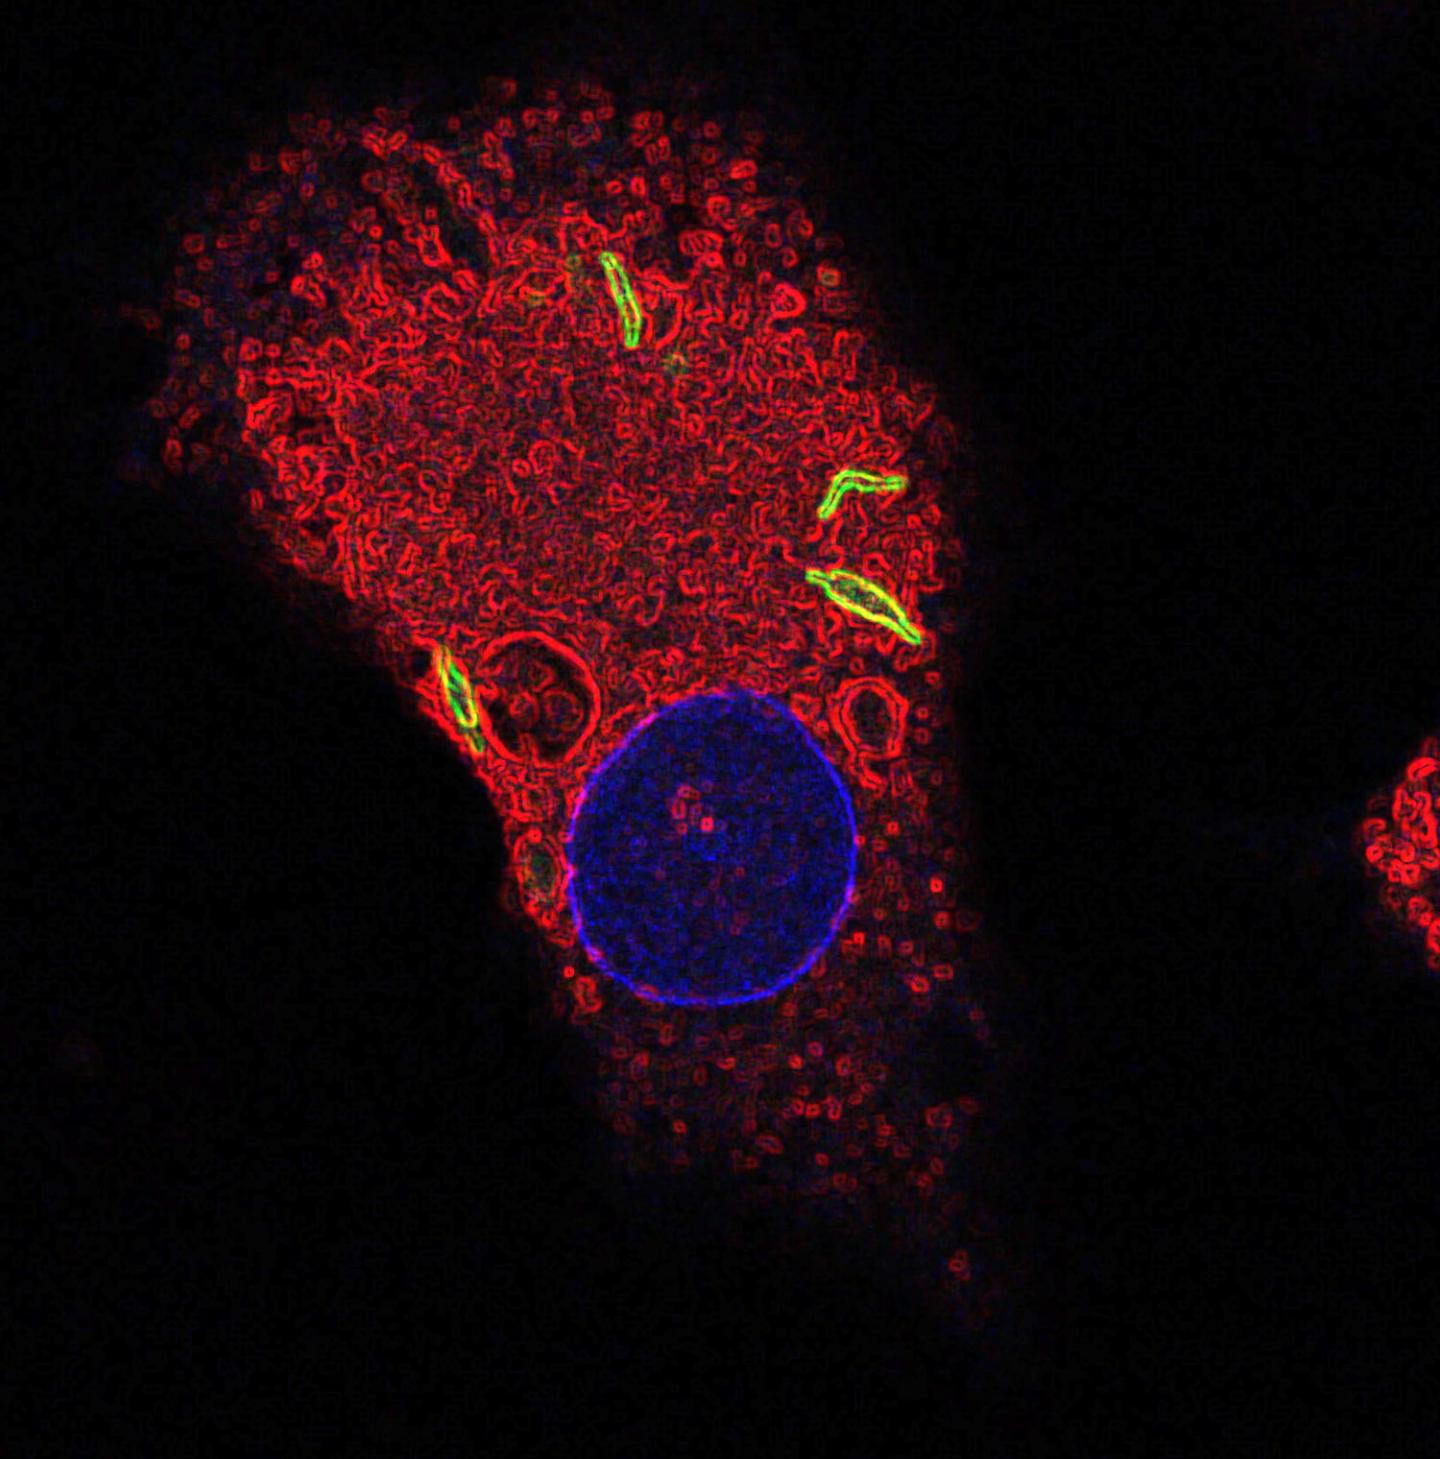 Image of a macrophage labeled for the nucleus (blue), fused lysosomes and phagosomes (red), and TB bacteria (green). [Susanne Herbst/Francis Crick Institute]